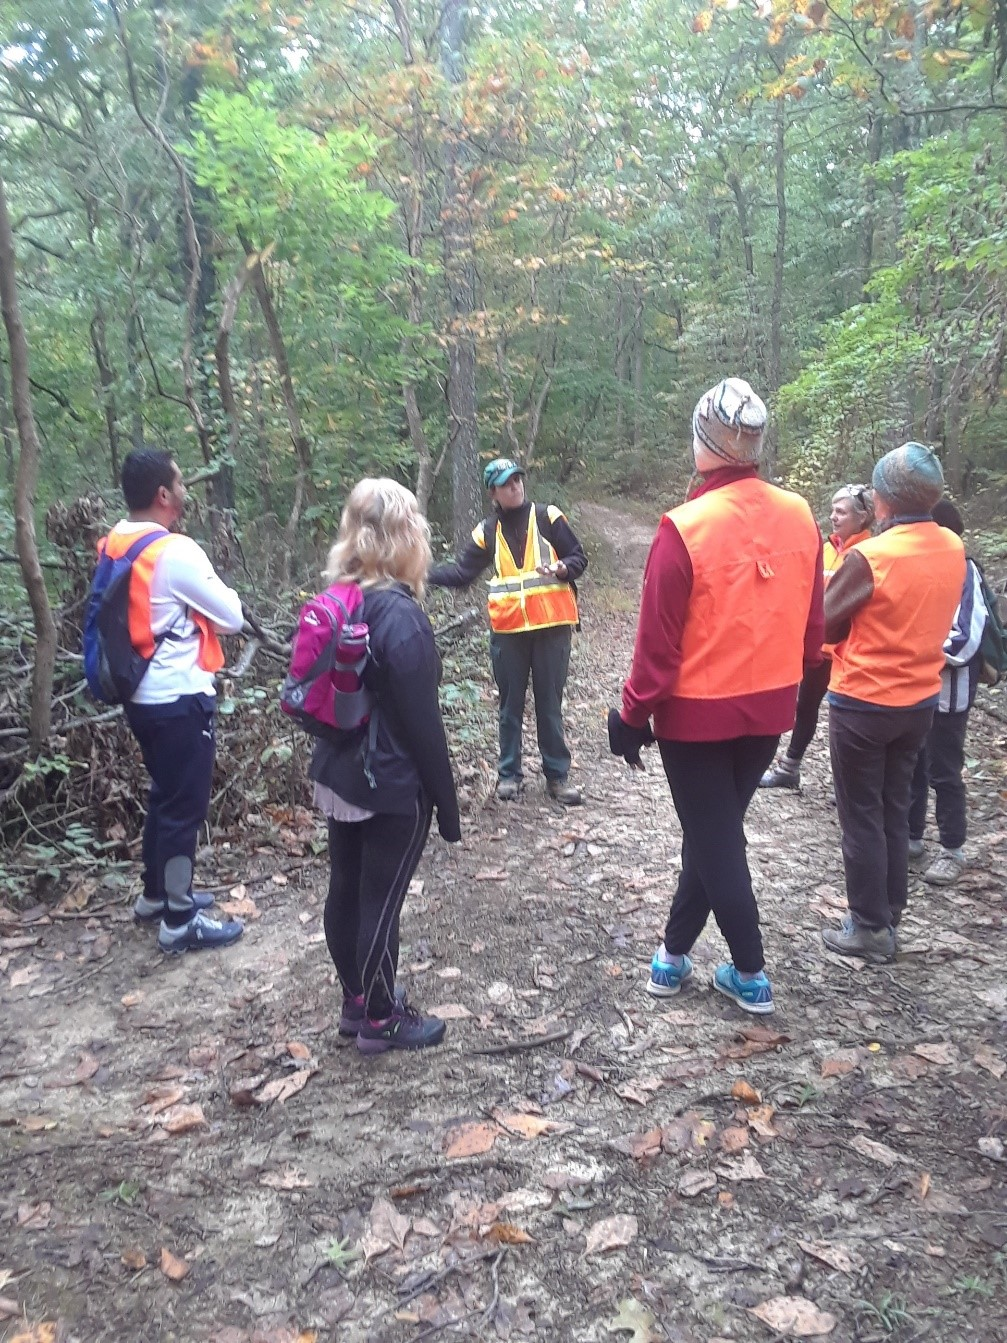 Last fall, participants braved temperatures in the 30s for the first wellness outing.